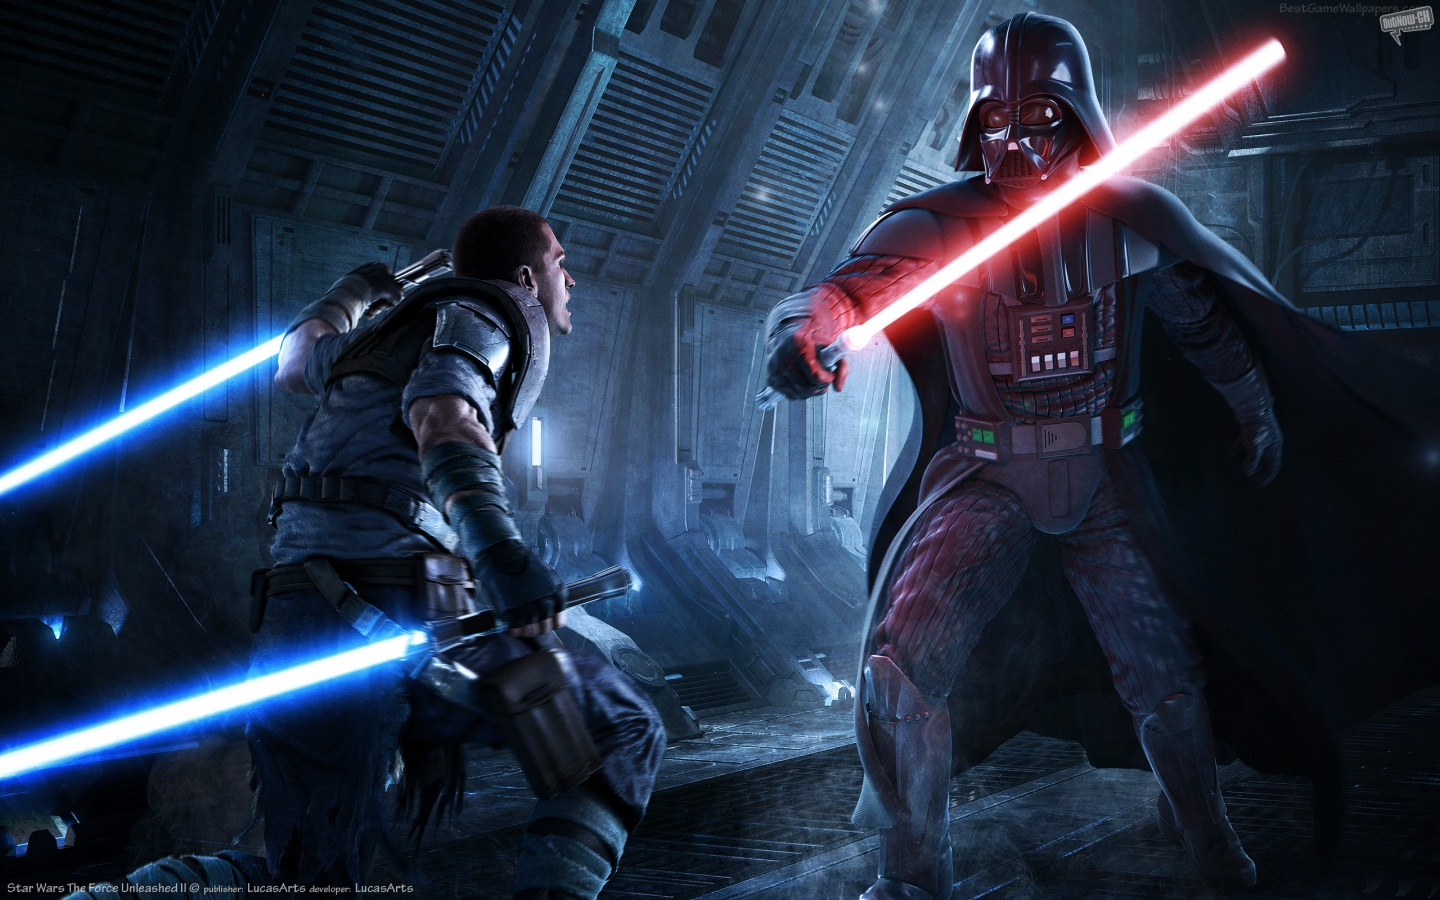 Free Download 1440x900 Star Wars Force Unleashed 2 Desktop Pc And Mac Wallpaper 1440x900 For Your Desktop Mobile Tablet Explore 47 Star Wars Wallpaper 1440 900 Free Wallpaper Backgrounds